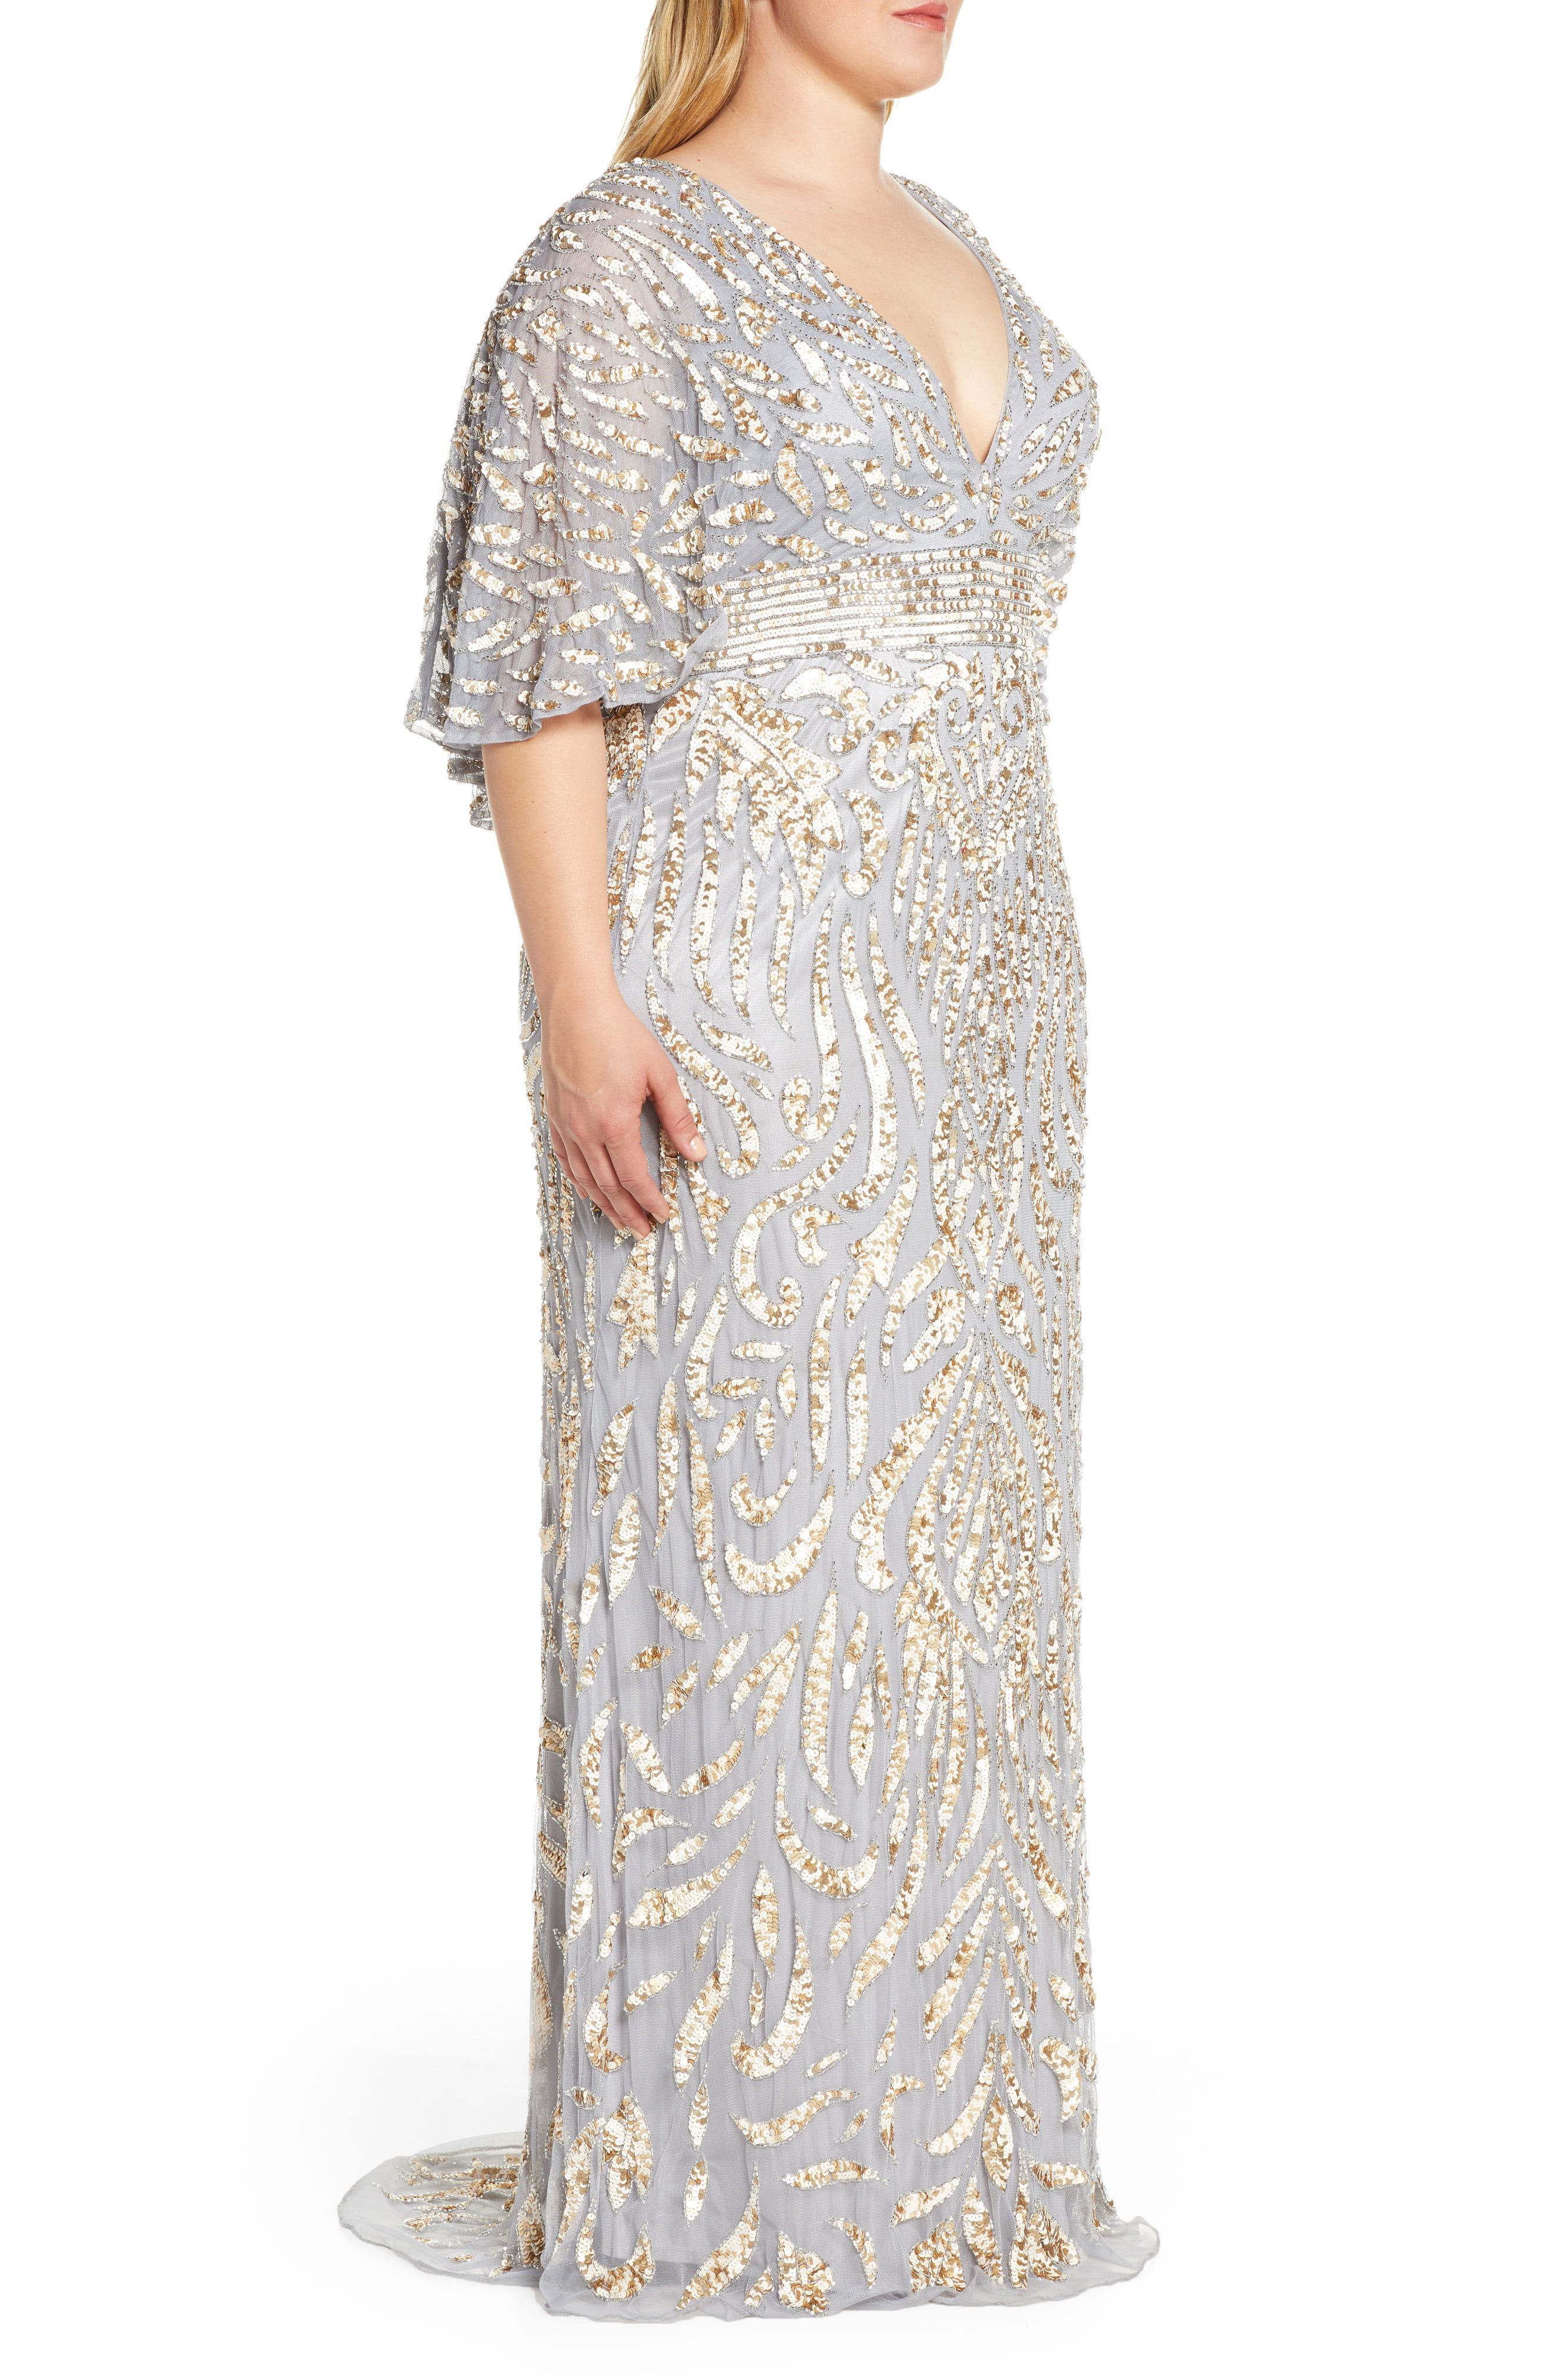 Mac Duggal Sequin Cape Sleeve Evening Gown Plus Size Nordstrom In 2021 Evening Gowns With Sleeves Plus Size Evening Gown Evening Dresses Plus Size [ 4048 x 2640 Pixel ]